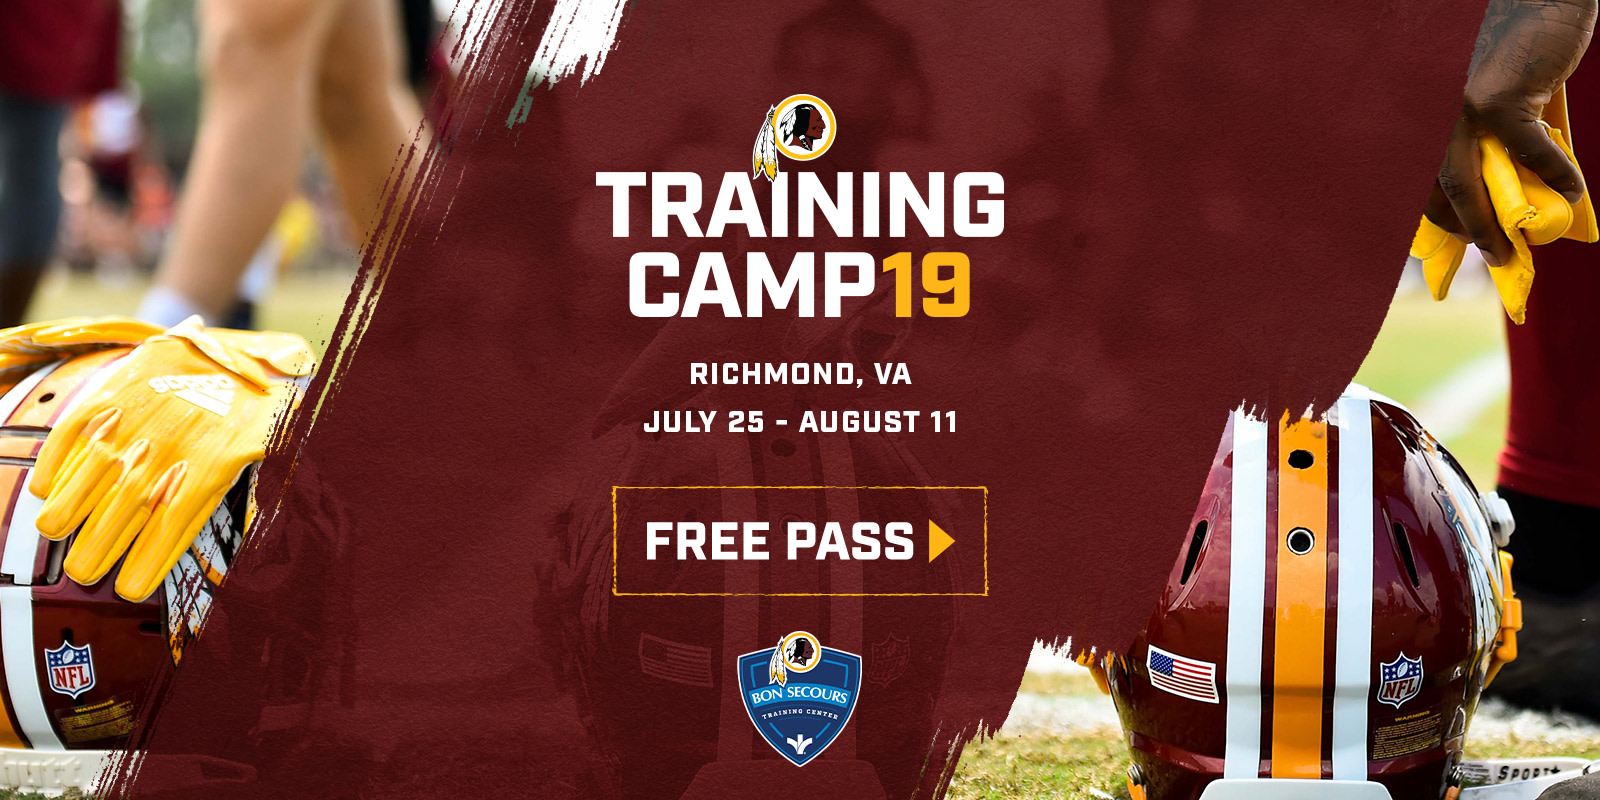 Redskins Training Camp | Washington Redskins - Redskins com